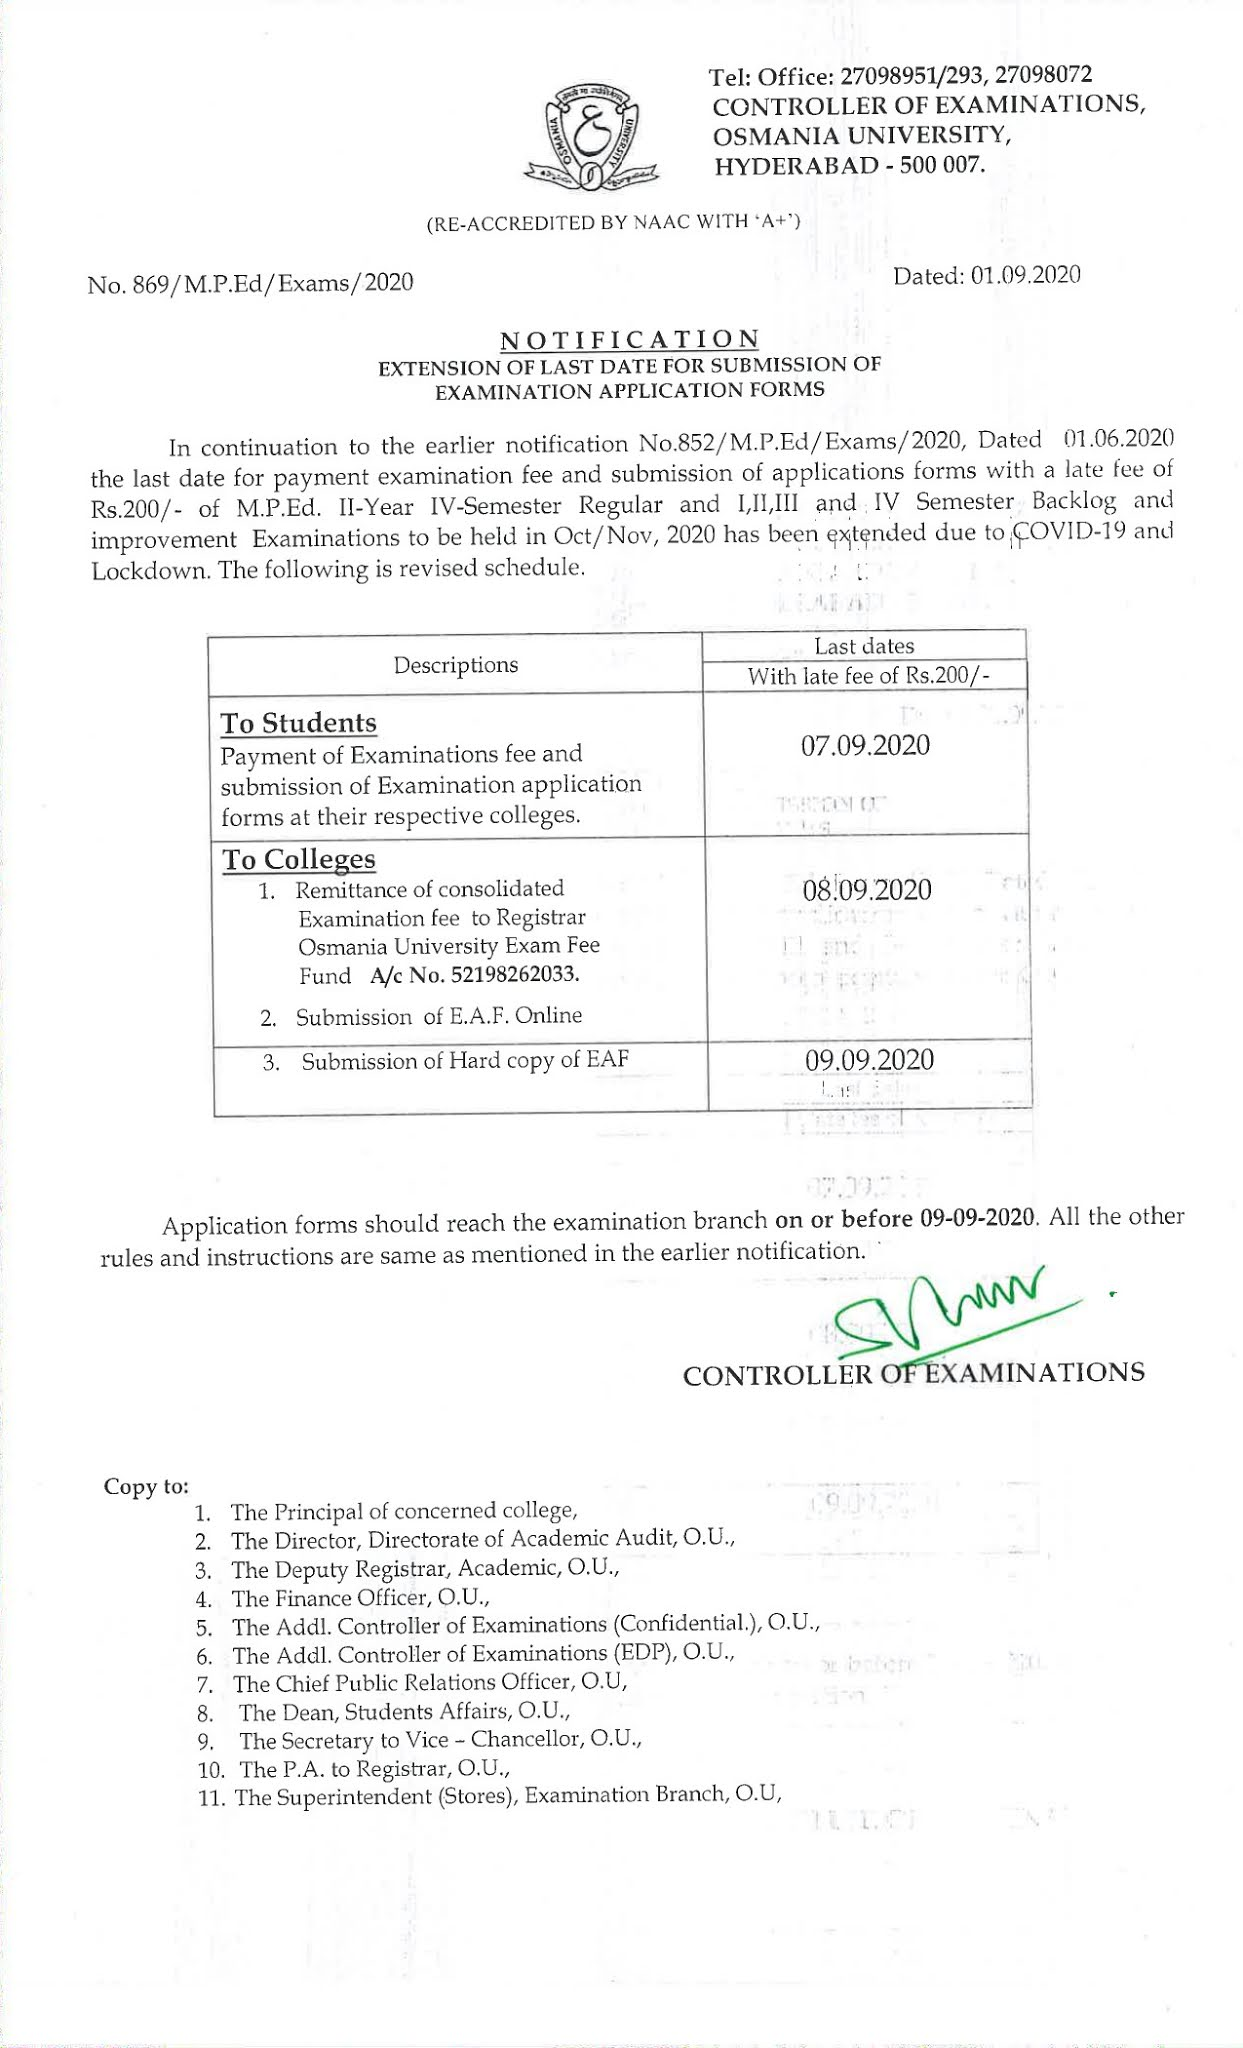 Osmania University M.P.Ed Oct 2020 Exam Fee Notification